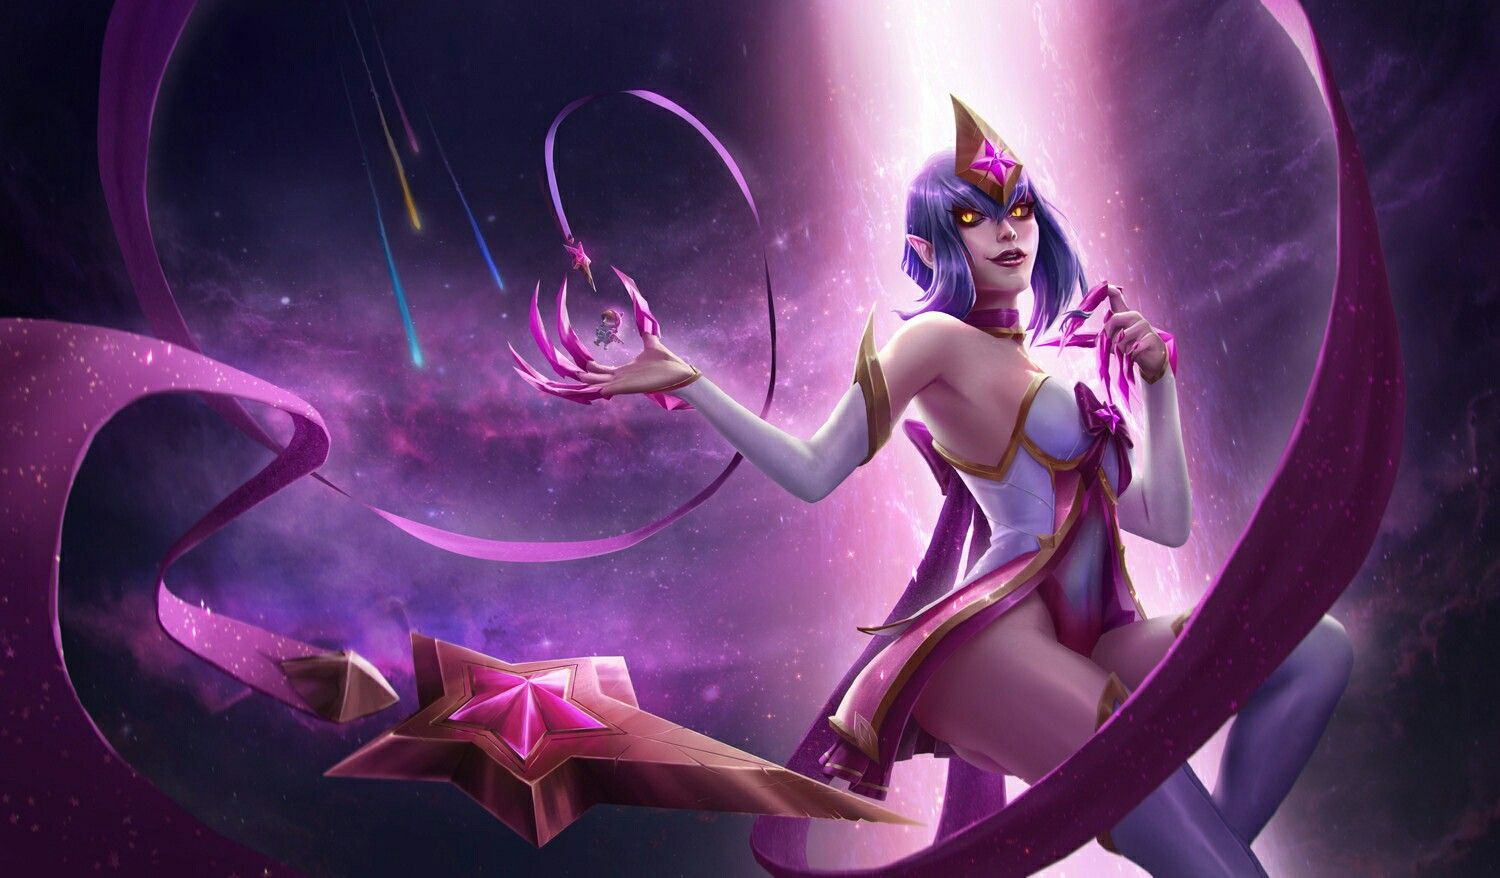 Holy moly star guardian evelynn